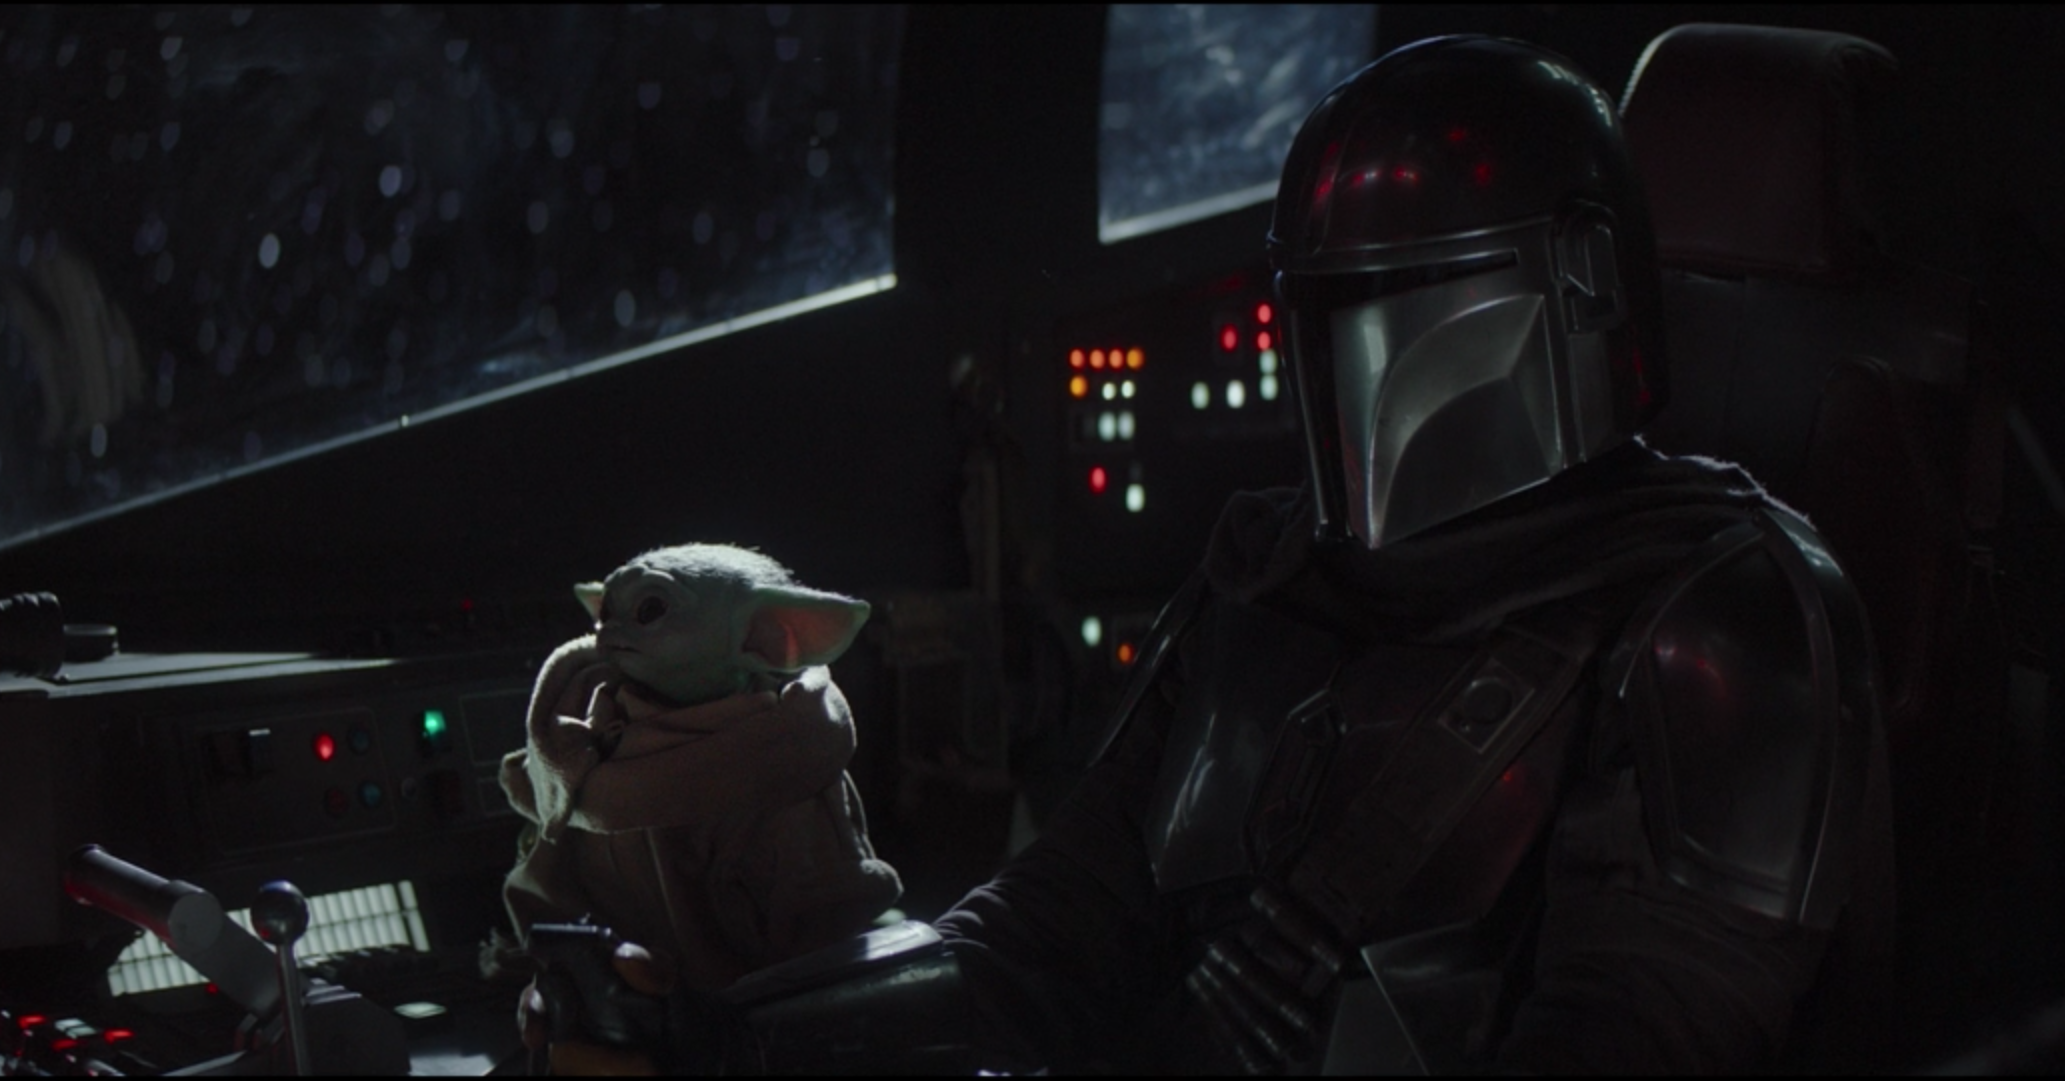 The Mandalorian Episode 4 Review The Great Geek Refuge I will feed him and play with him i'll never leave his side he's the cutest little womp rat even when you've got the cutest little face i just wanna pinch those cheeks you've cornered the market your. the mandalorian episode 4 review the